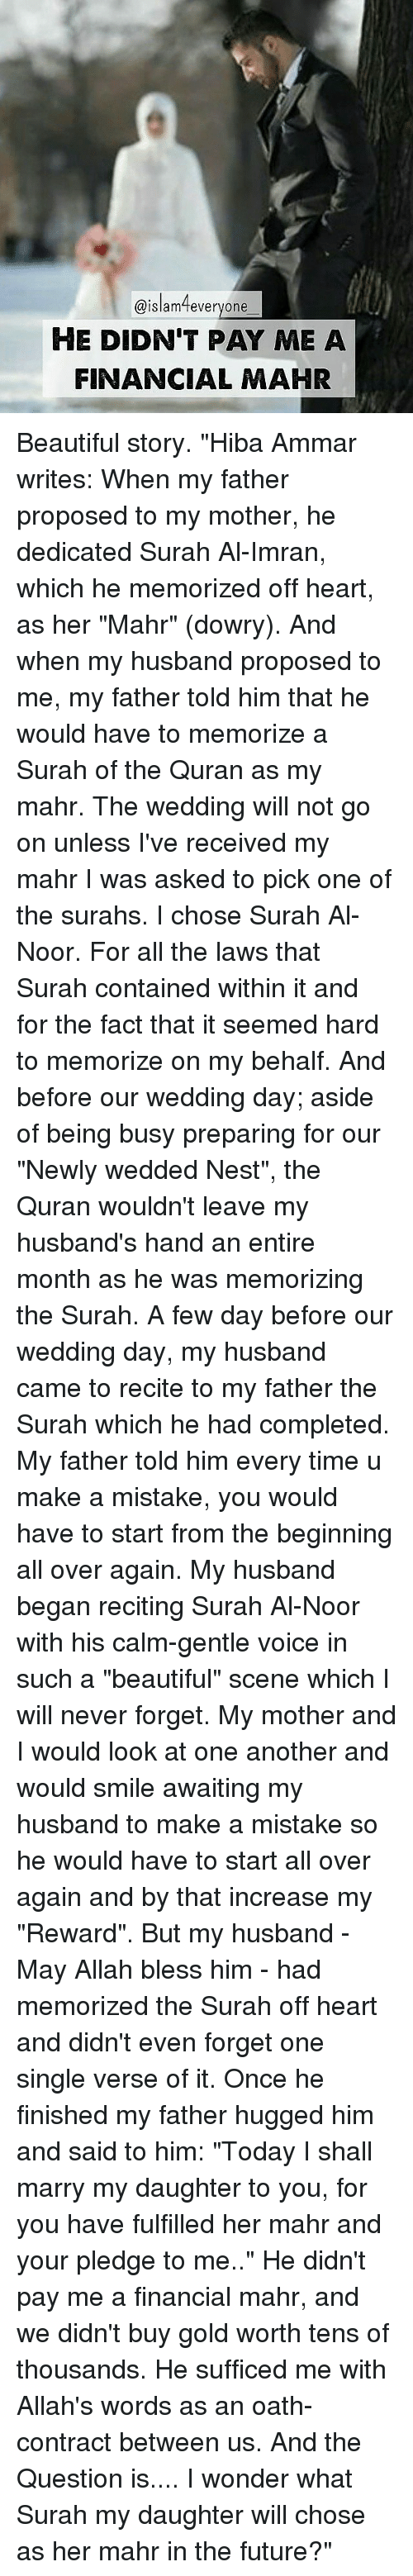 """Memorals: Islam feveryone  HE DIDNT PAY ME A  FINANCIAL MAHR Beautiful story. """"Hiba Ammar writes: When my father proposed to my mother, he dedicated Surah Al-Imran, which he memorized off heart, as her """"Mahr"""" (dowry). And when my husband proposed to me, my father told him that he would have to memorize a Surah of the Quran as my mahr. The wedding will not go on unless I've received my mahr I was asked to pick one of the surahs. I chose Surah Al-Noor. For all the laws that Surah contained within it and for the fact that it seemed hard to memorize on my behalf. And before our wedding day; aside of being busy preparing for our """"Newly wedded Nest"""", the Quran wouldn't leave my husband's hand an entire month as he was memorizing the Surah. A few day before our wedding day, my husband came to recite to my father the Surah which he had completed. My father told him every time u make a mistake, you would have to start from the beginning all over again. My husband began reciting Surah Al-Noor with his calm-gentle voice in such a """"beautiful"""" scene which I will never forget. My mother and I would look at one another and would smile awaiting my husband to make a mistake so he would have to start all over again and by that increase my """"Reward"""". But my husband - May Allah bless him - had memorized the Surah off heart and didn't even forget one single verse of it. Once he finished my father hugged him and said to him: """"Today I shall marry my daughter to you, for you have fulfilled her mahr and your pledge to me.."""" He didn't pay me a financial mahr, and we didn't buy gold worth tens of thousands. He sufficed me with Allah's words as an oath- contract between us. And the Question is.... I wonder what Surah my daughter will chose as her mahr in the future?"""""""